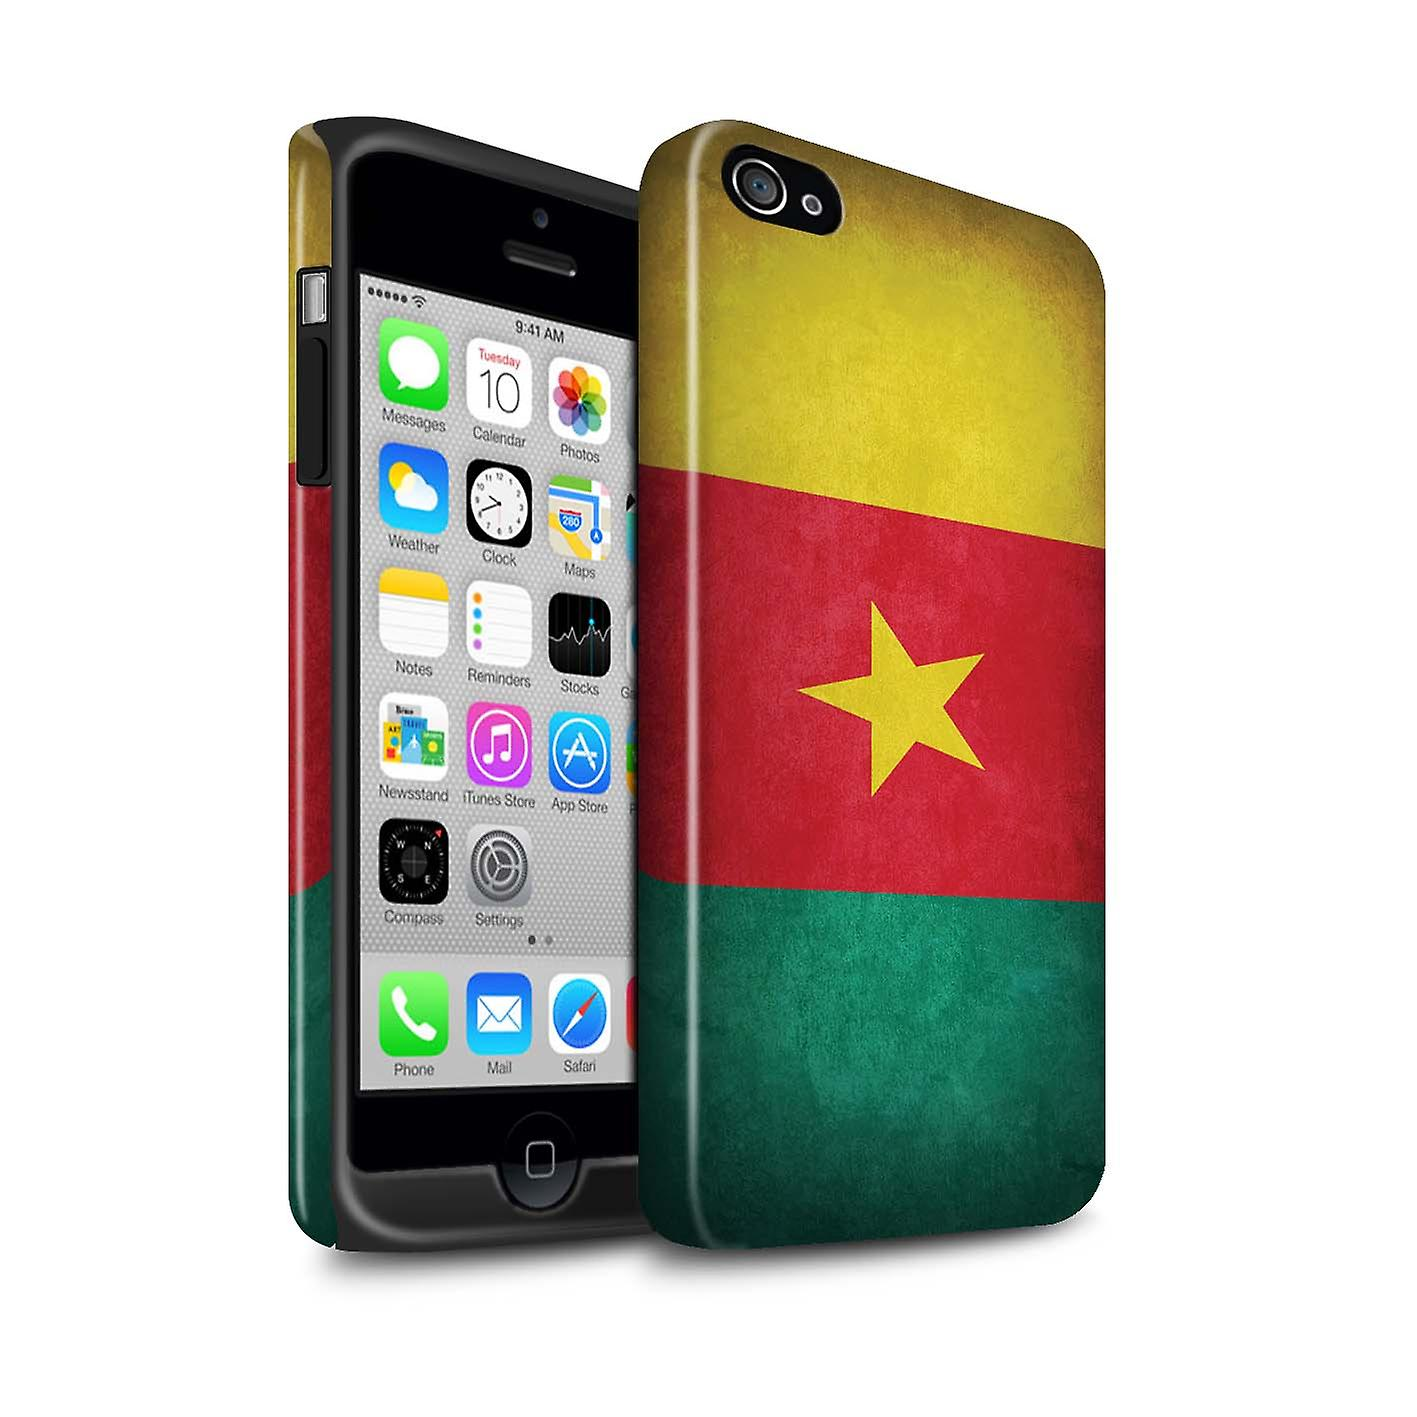 aacc2464905c5 STUFF4 Gloss Tough Shock Proof Phone Case for Apple iPhone 4 4S Cameroon